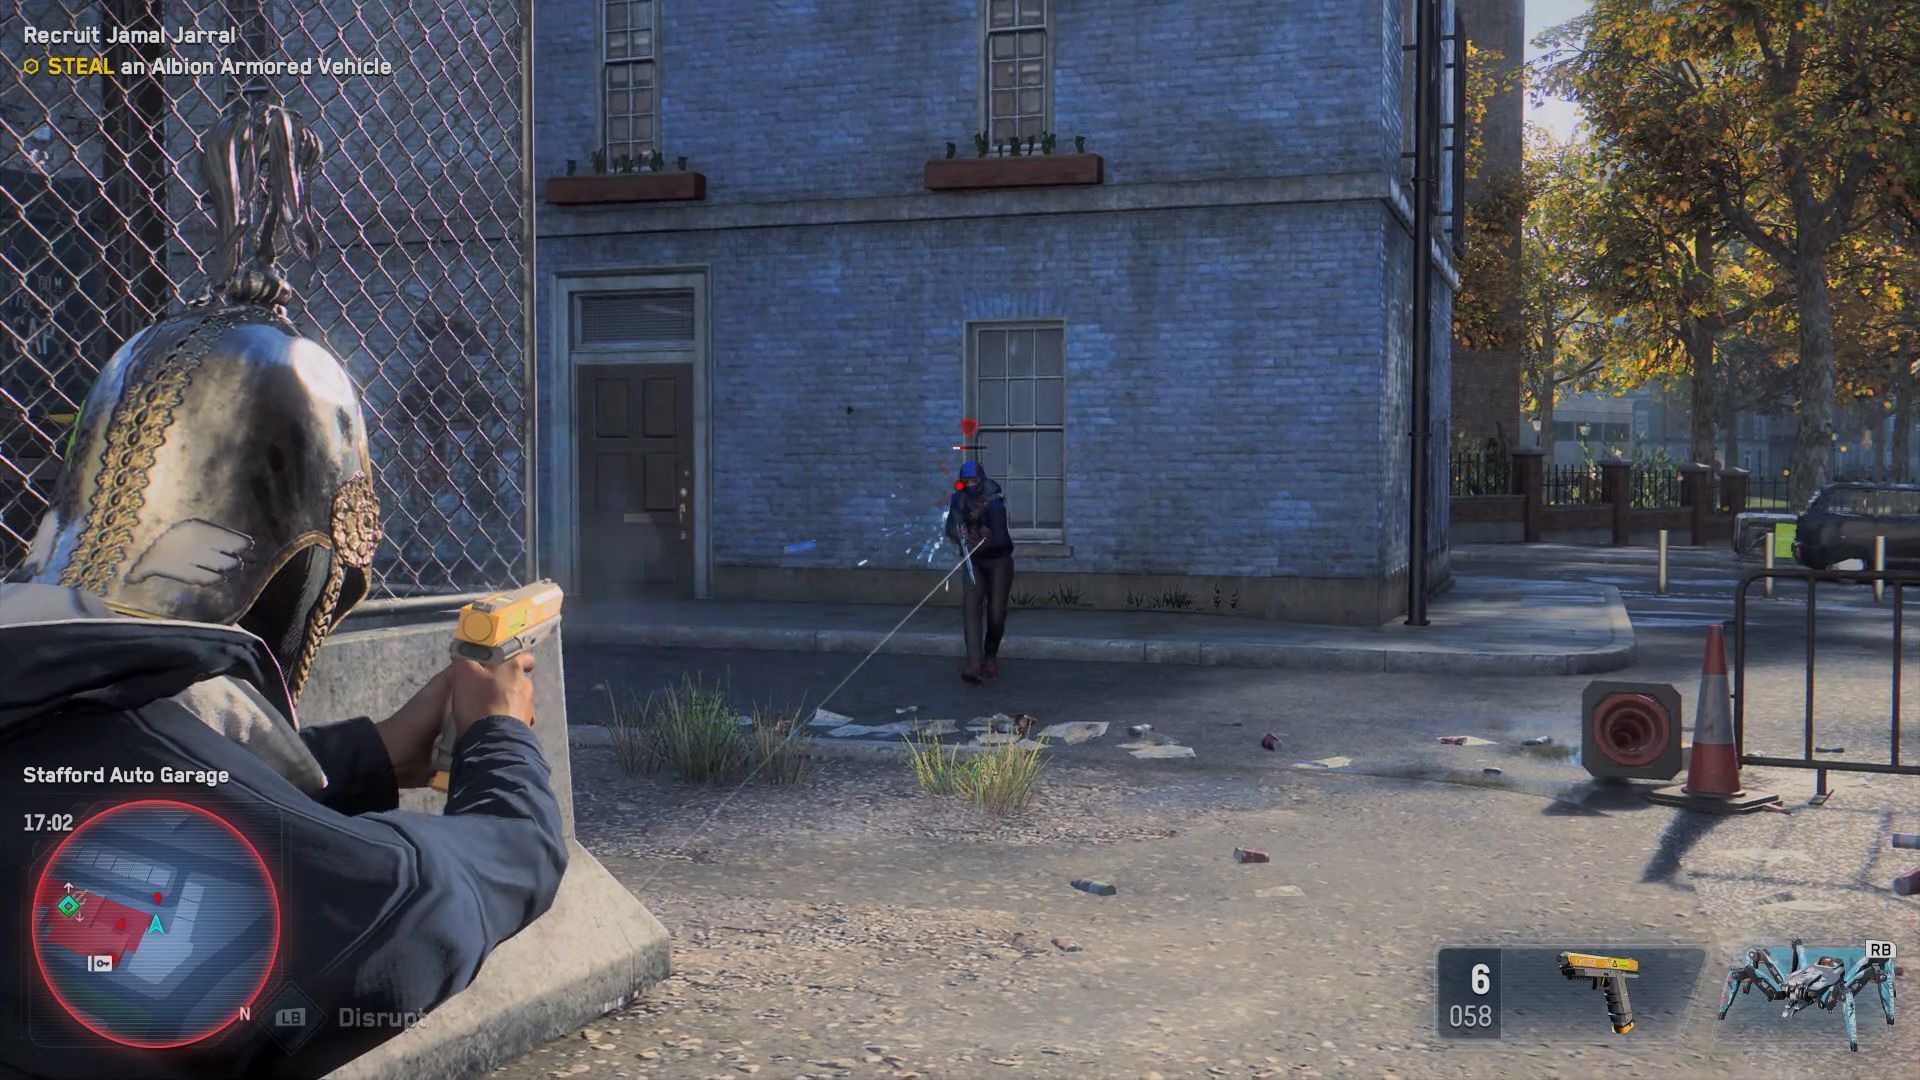 A screenshot of Watch Dogs: Legion combat showing the player controller character in third person viewpoint with a gun raised and aimed at an character in the street coming towards them.